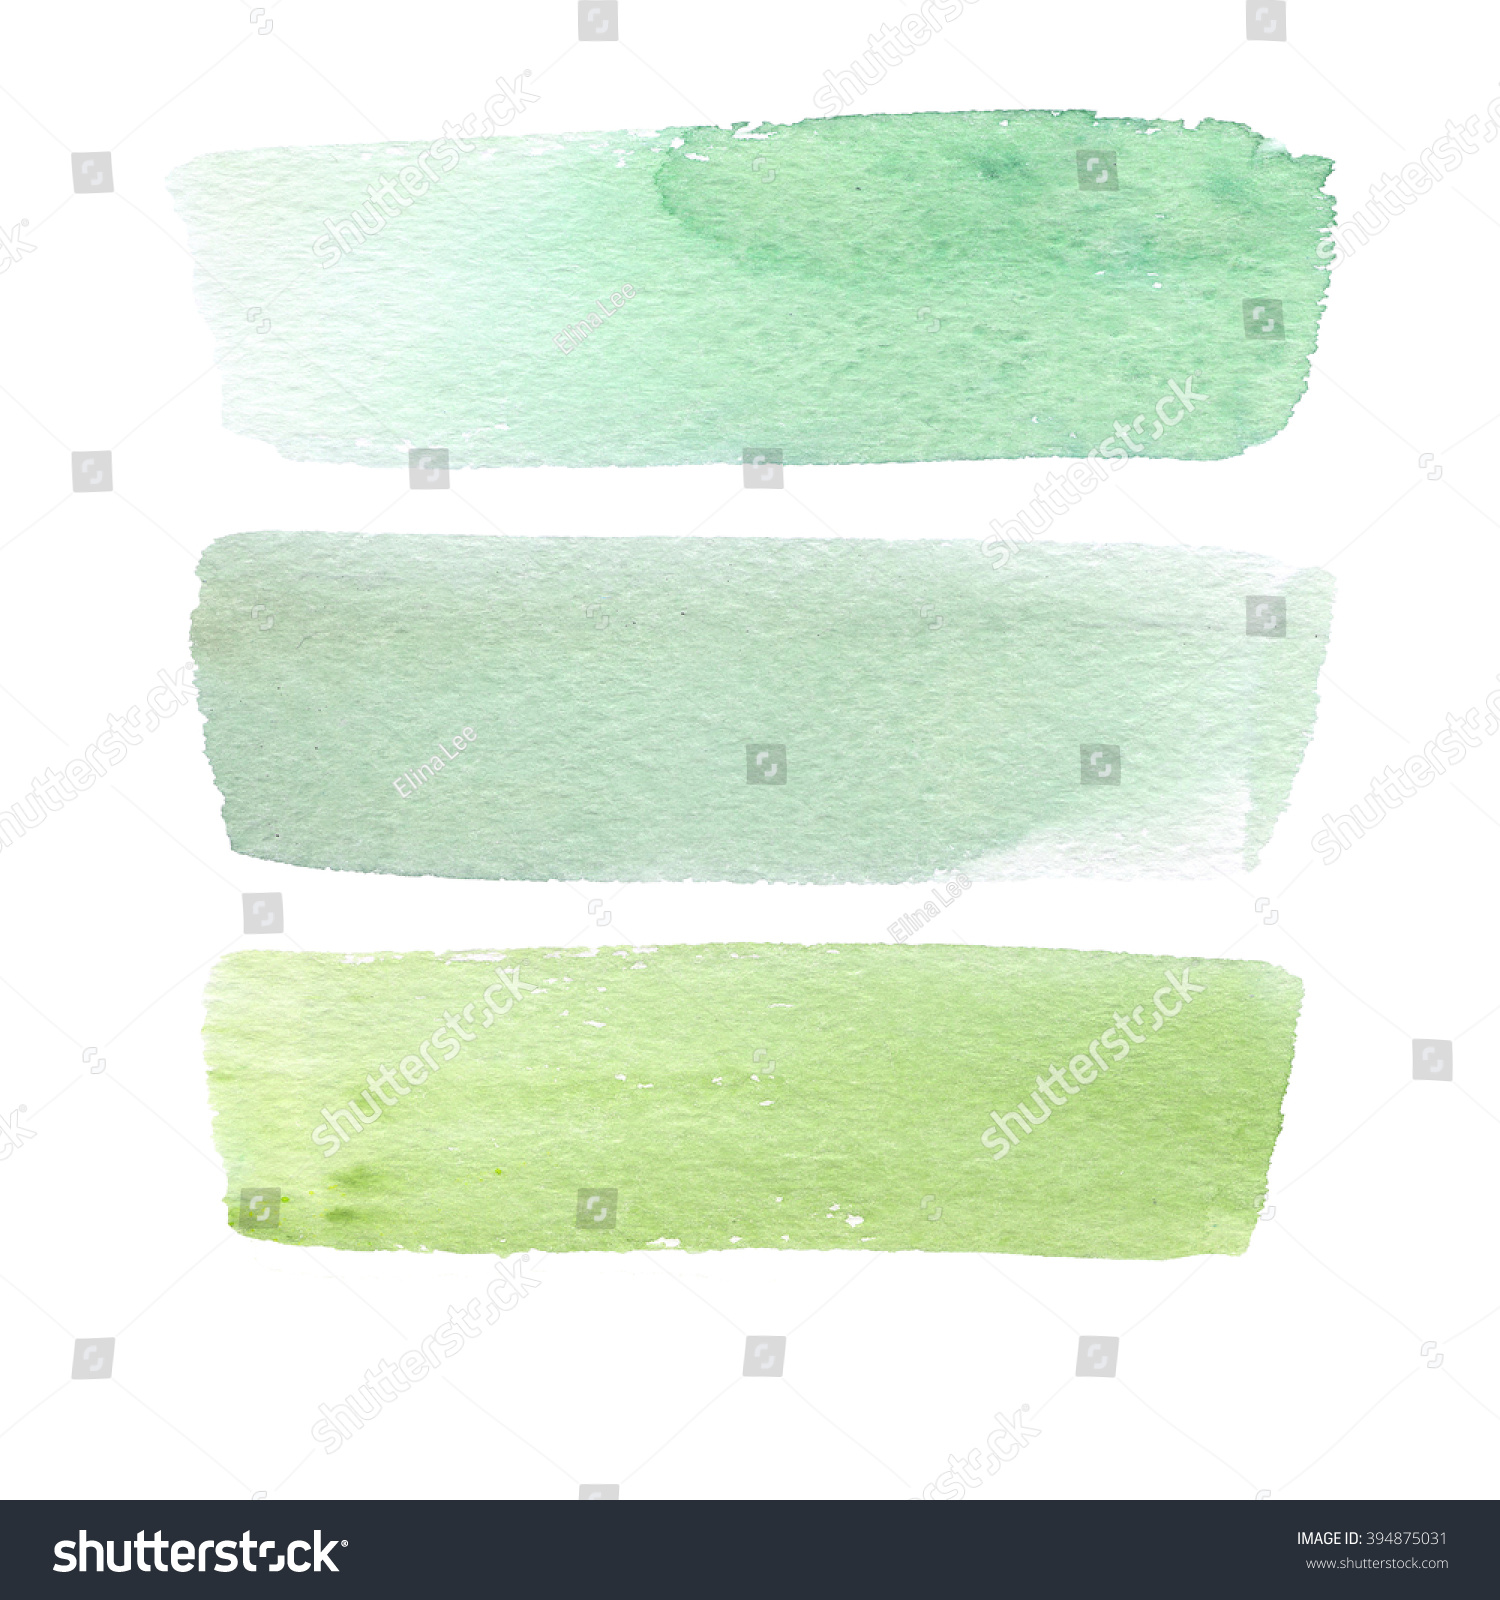 Colorful Watercolor Brush Strokes Watercolor Background Stock